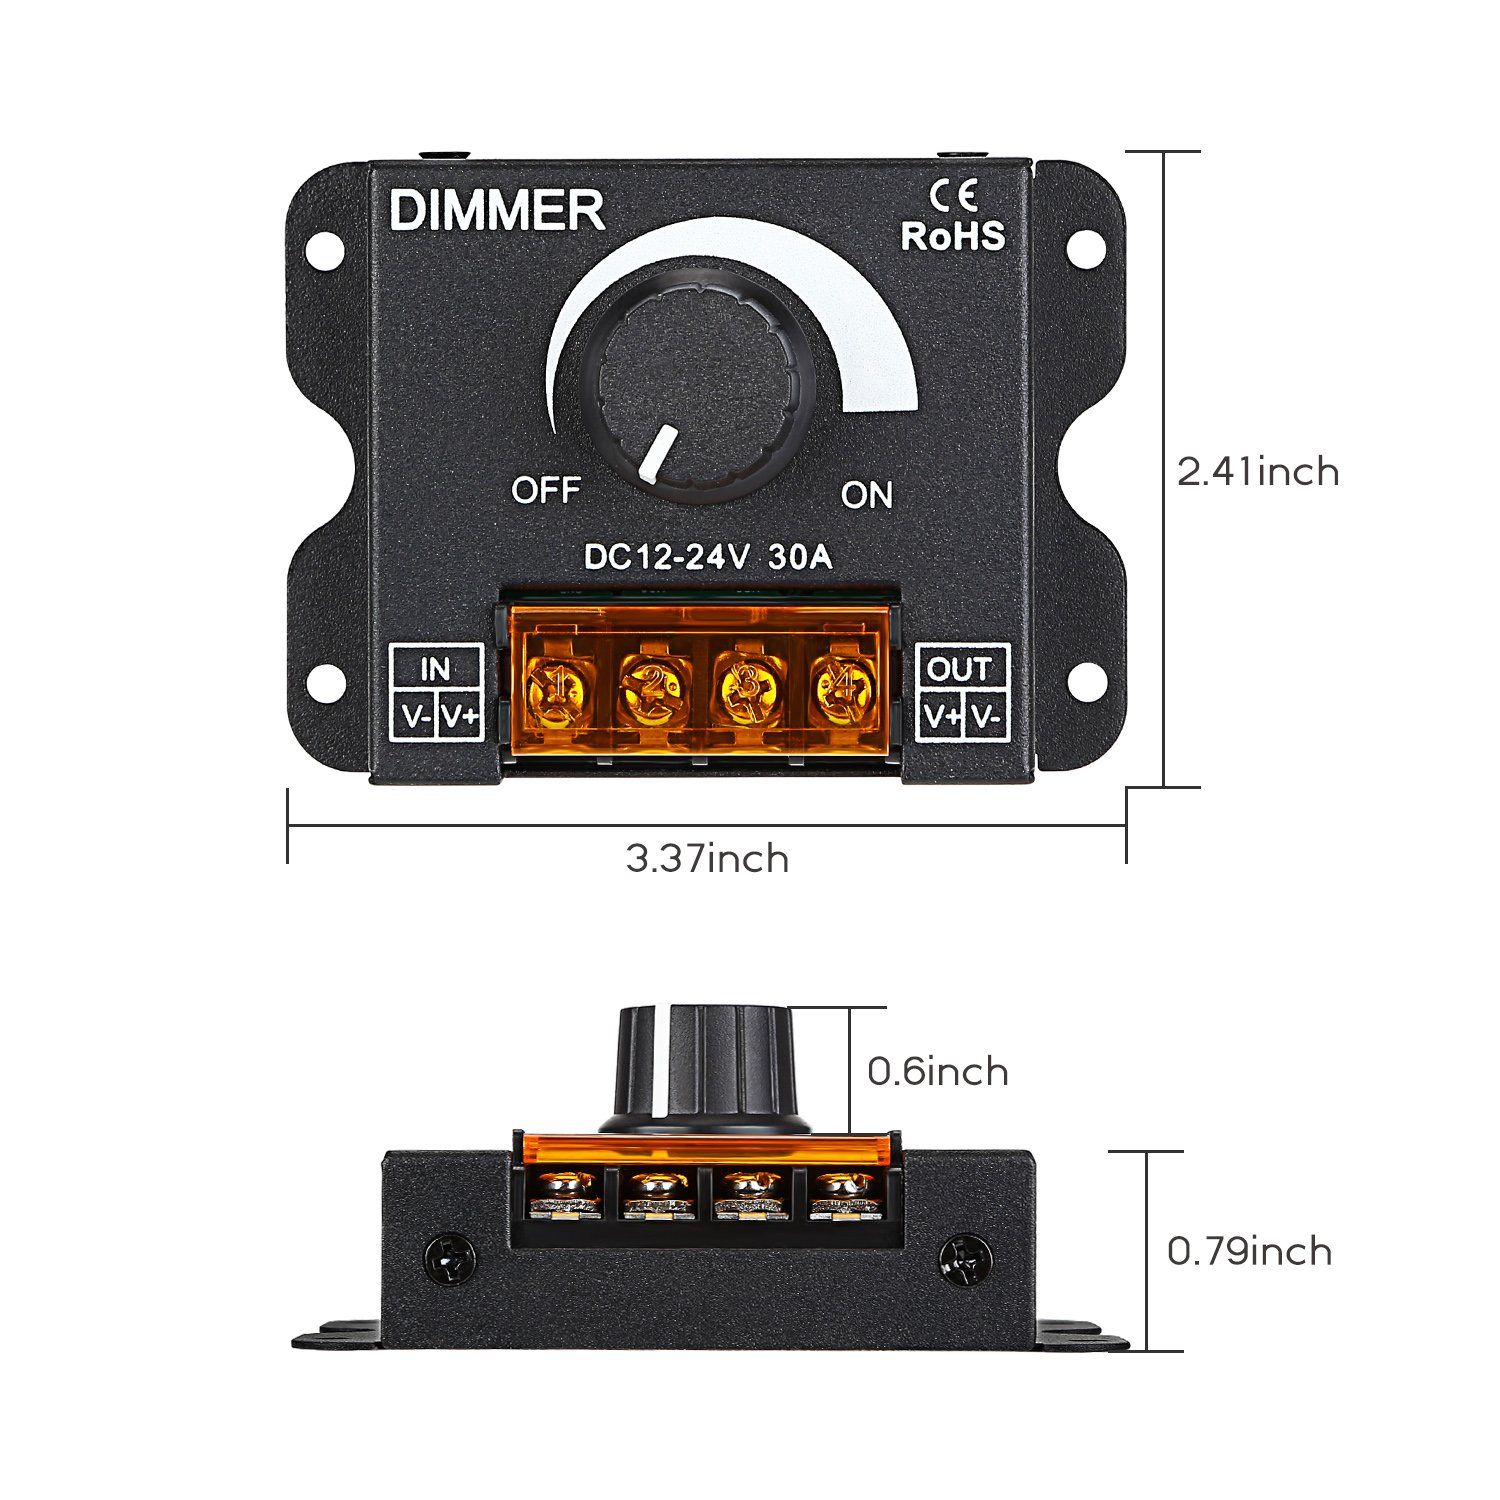 TORCHSTAR PWM Dimming Controller for LED Strip Light, DC 12V - 24V Dimmer Knob ON/OFF Switch with Aluminum Housing, Single Channel 30A 5050 3538 5630 Single Color Light Ribbon by TORCHSTAR (Image #6)